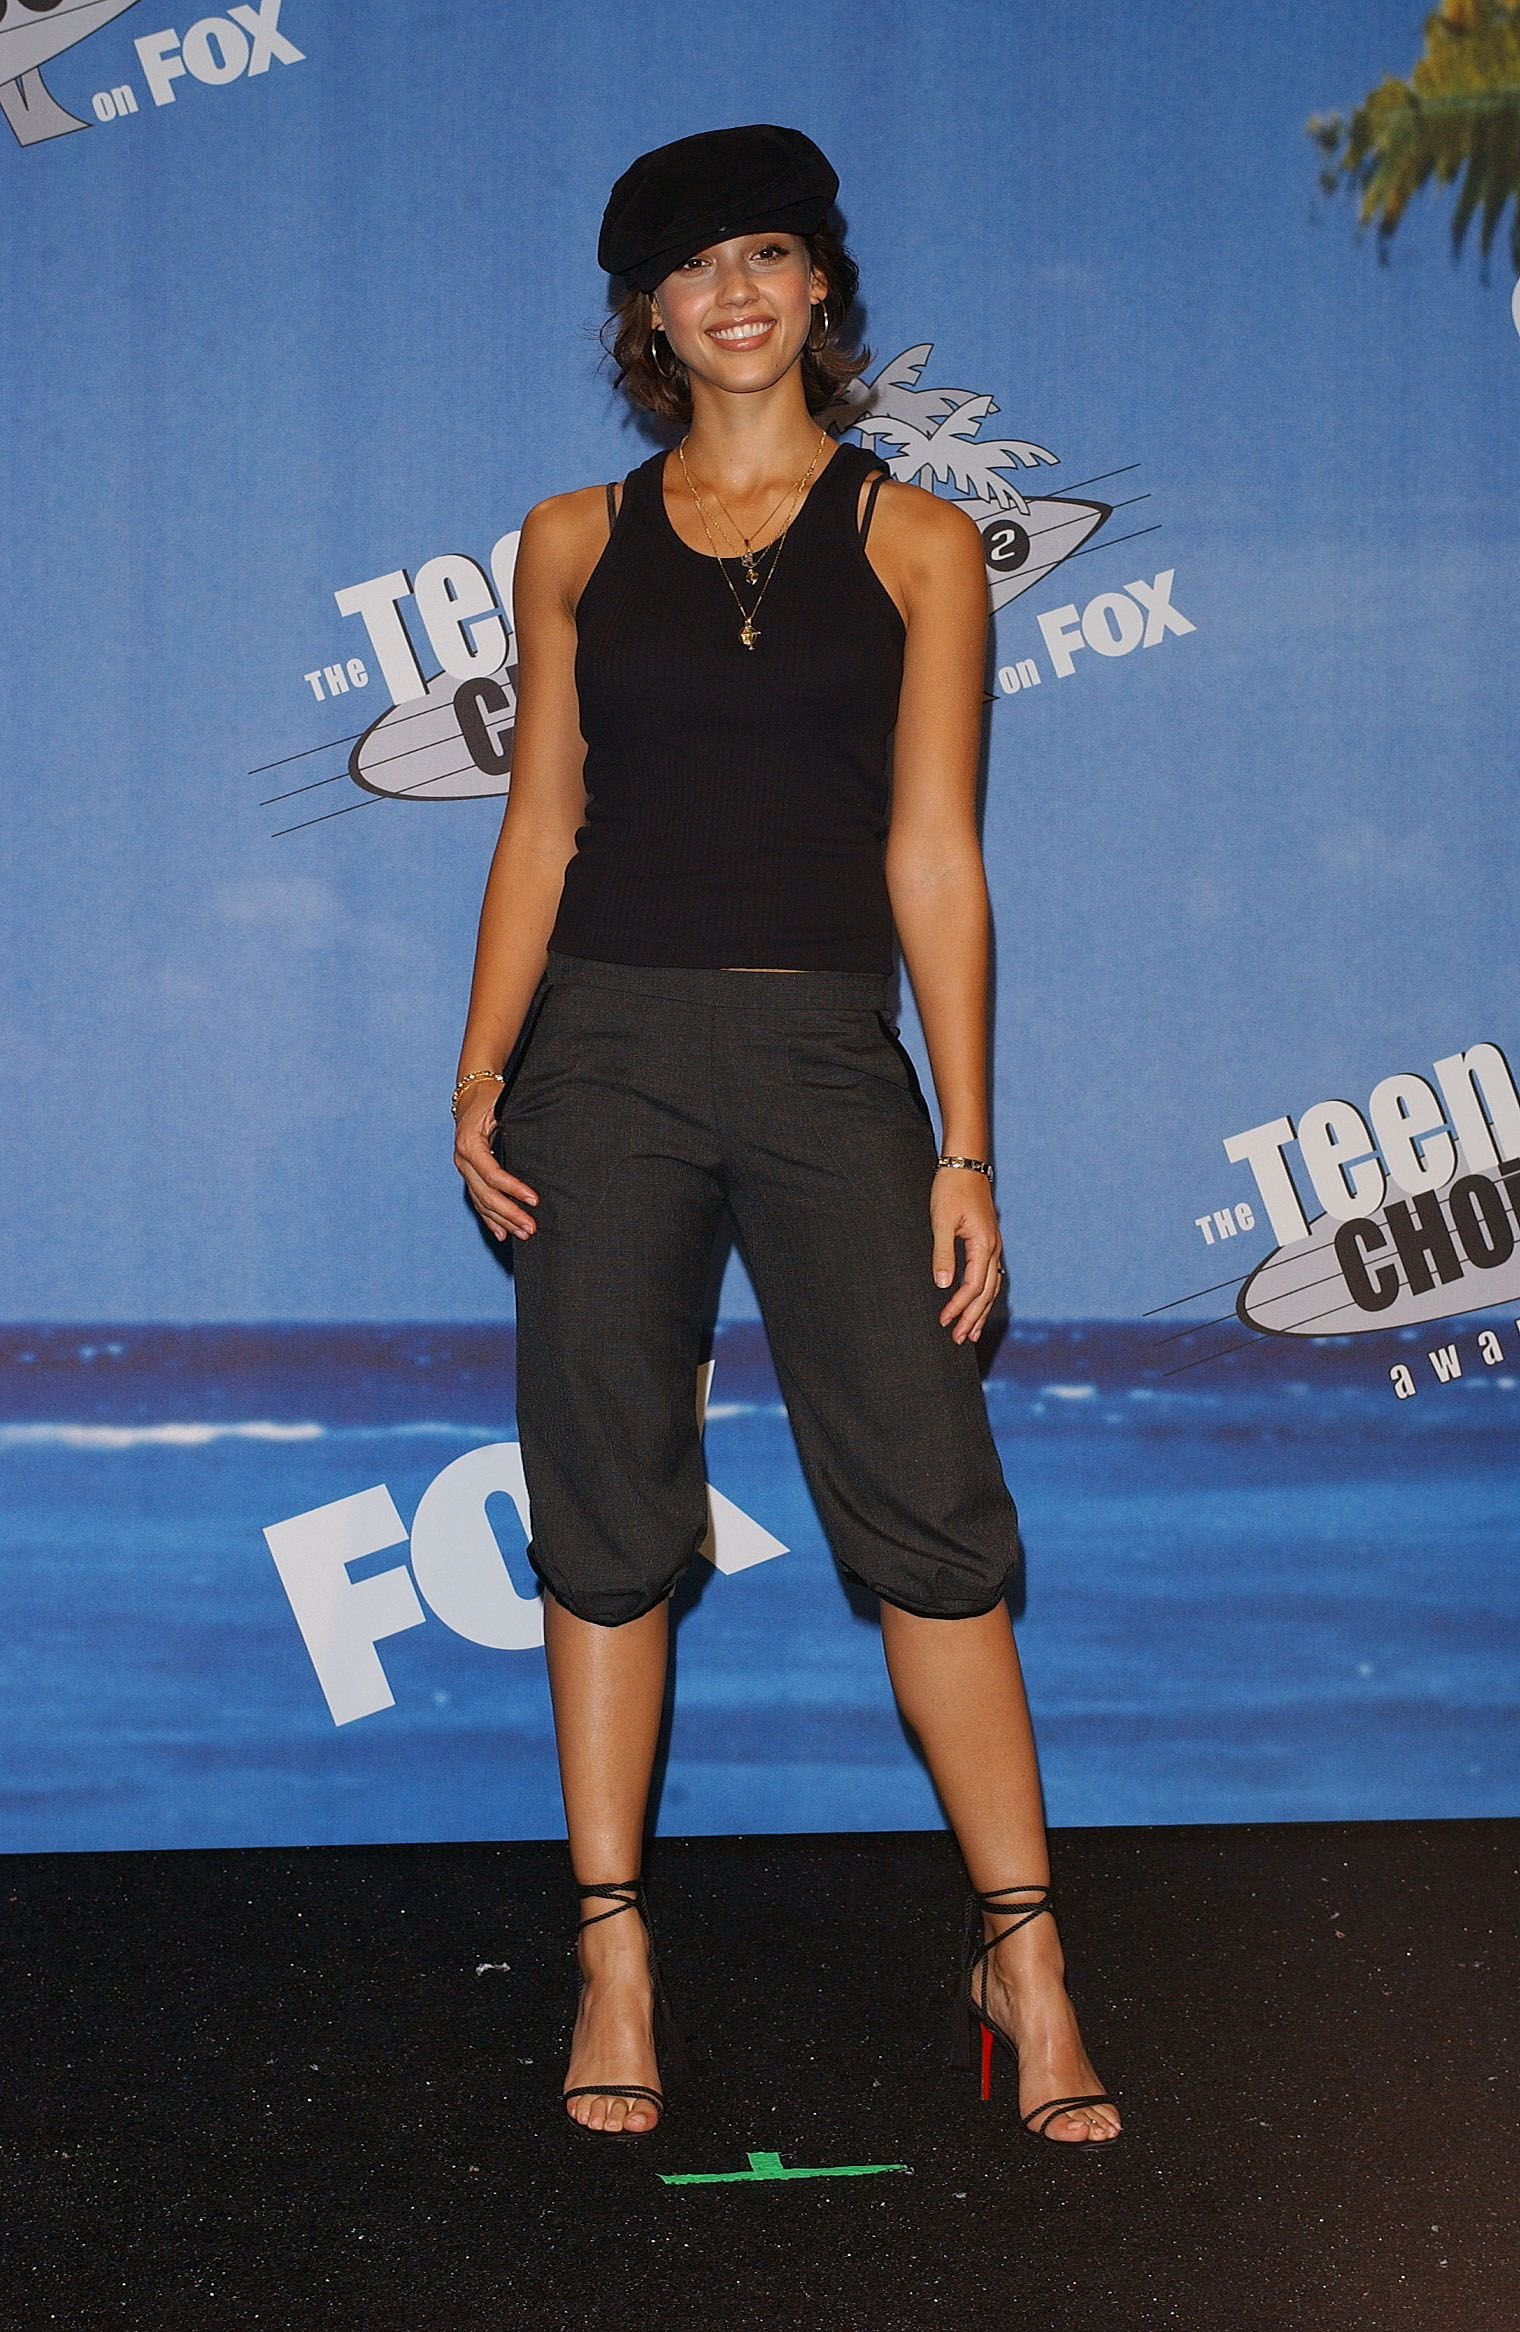 Aug. 4, 2002 - STAMP, U.S. - KRT STAND-ALONE PHOTO - KRT PHOTOGRAPH BY LIONEL HAHN/ABACA (August 5) Jessica Alba appears at the 2002 Teen Choice Awards, Sunday, August 4, 2002 in Los Angeles, California. (KRT) NC KD BL 2002 (Vert) (smd), Image: 193594369, License: Rights-managed, Restrictions: , Model Release: no, Credit line: Profimedia, Zuma Press - Archives